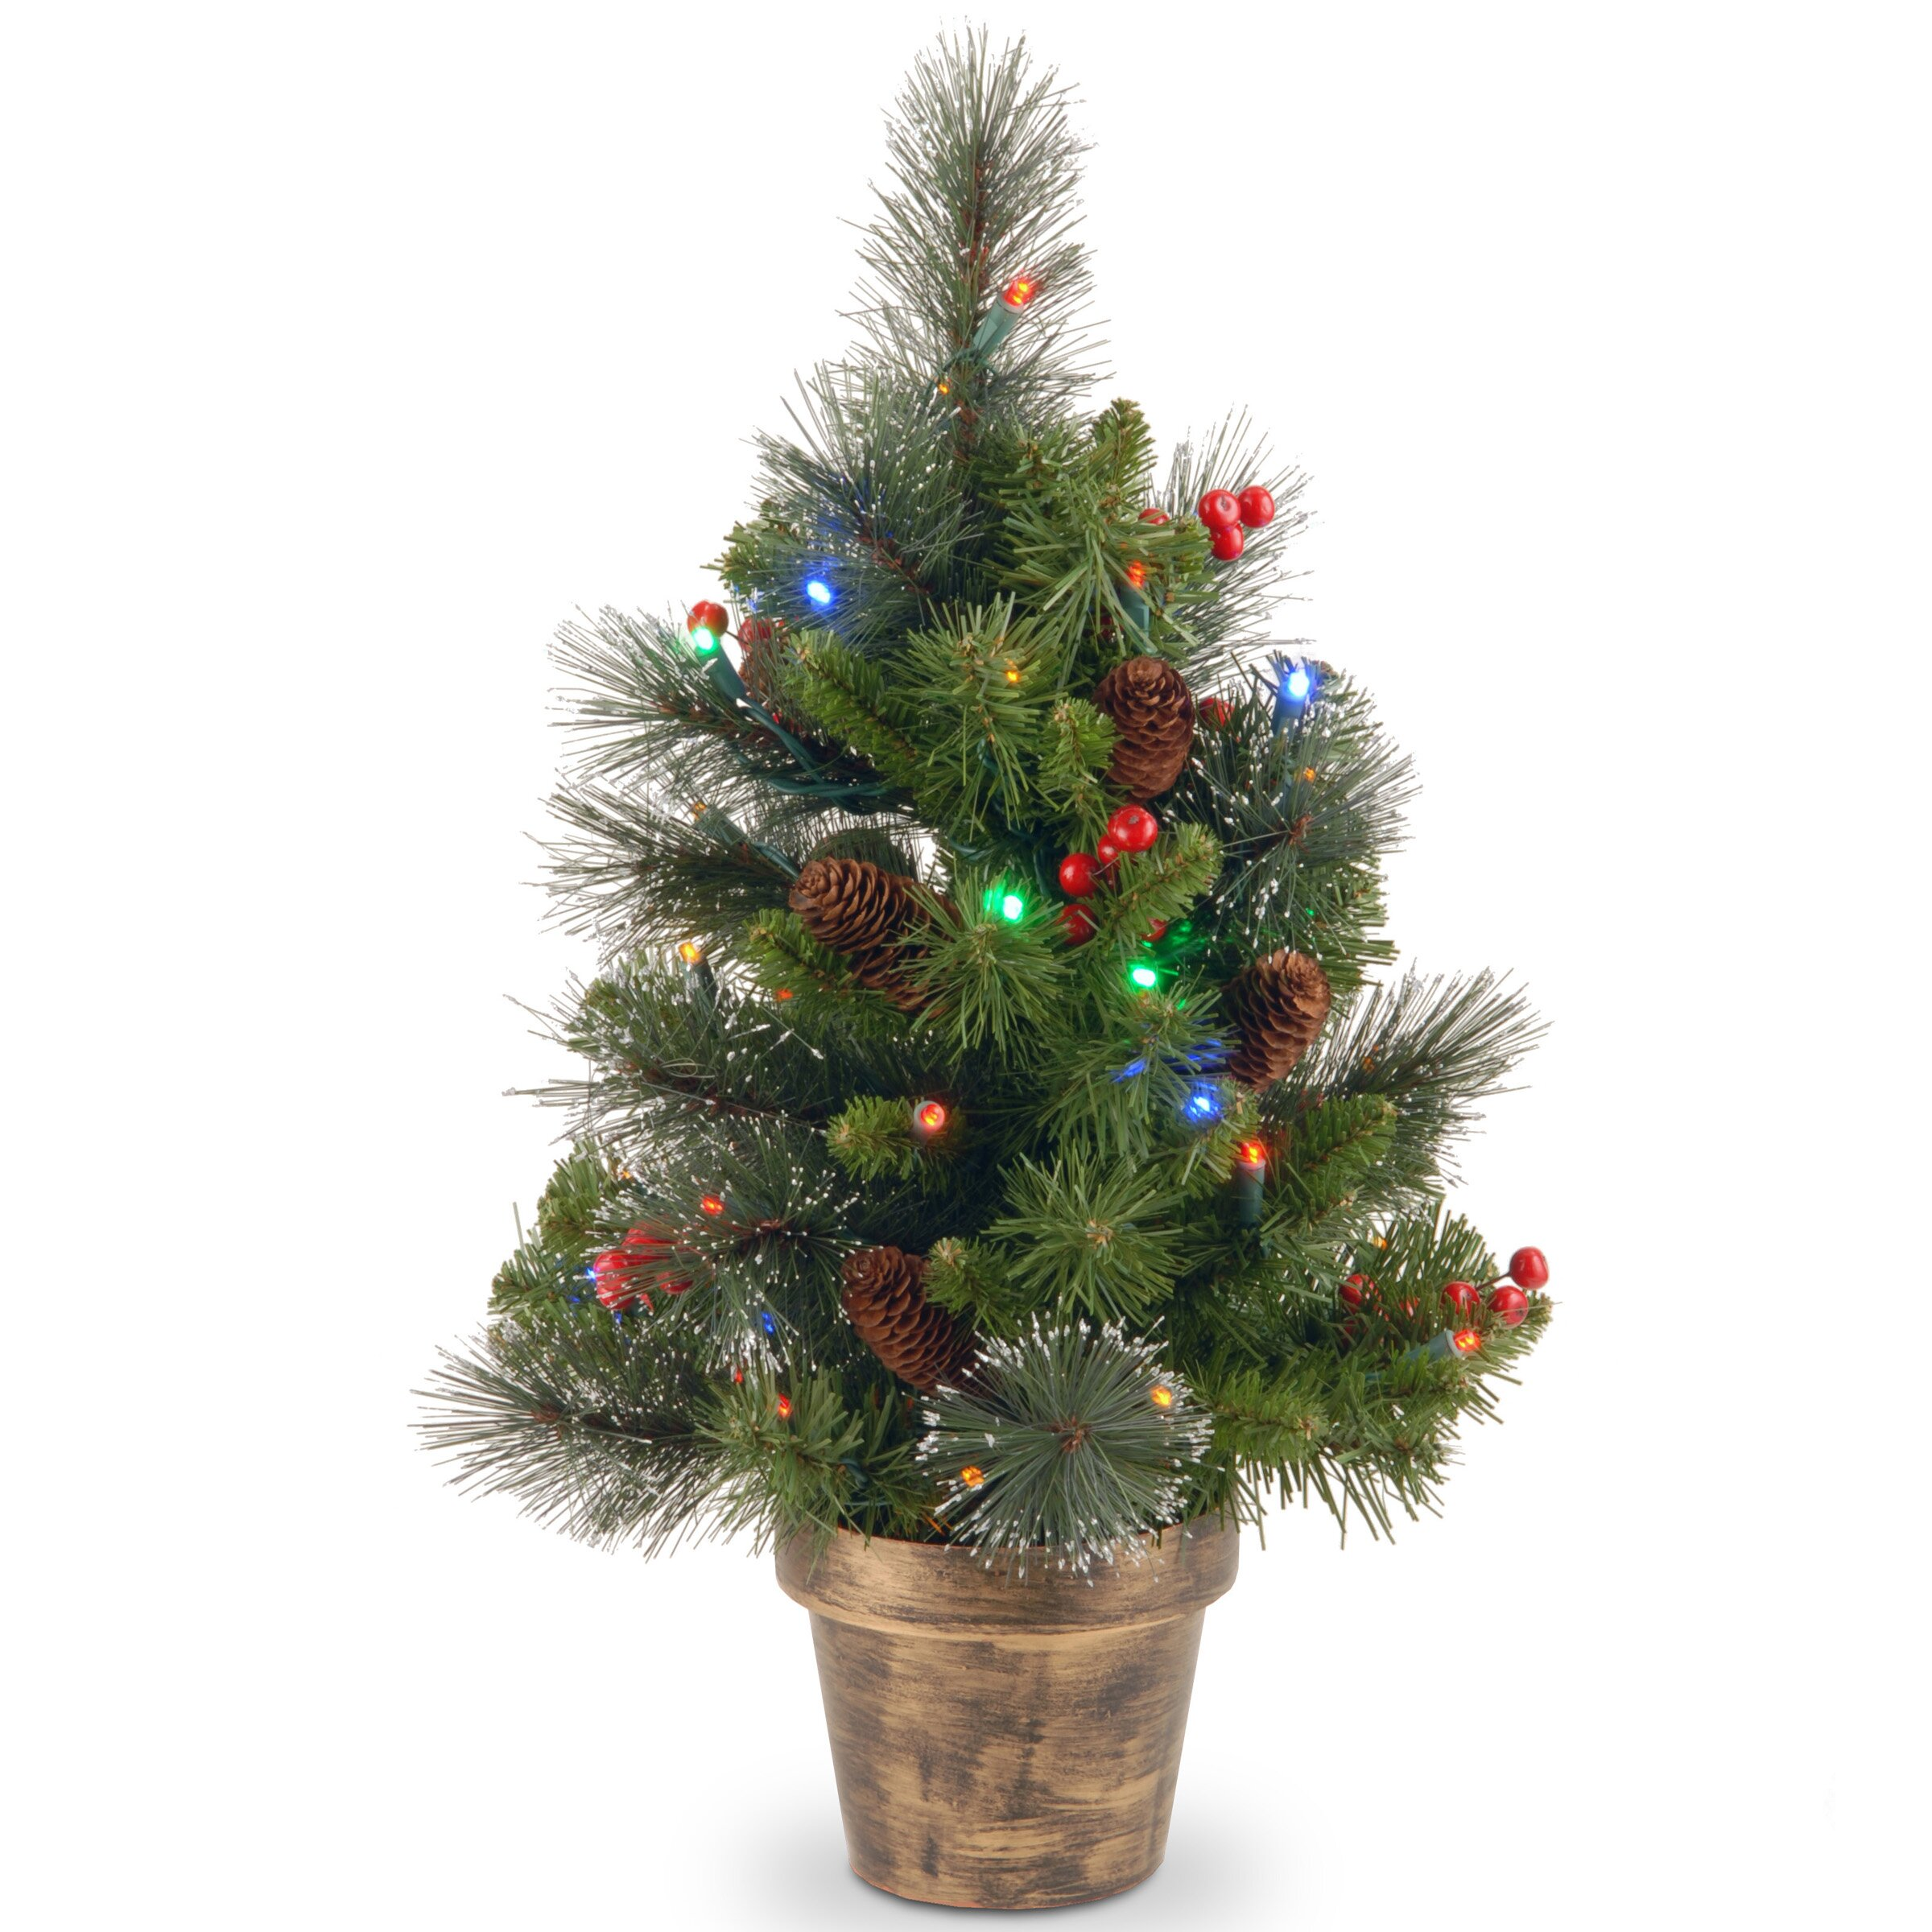 Crestwood Spruce 2 Green Small Artificia Christmas Tree